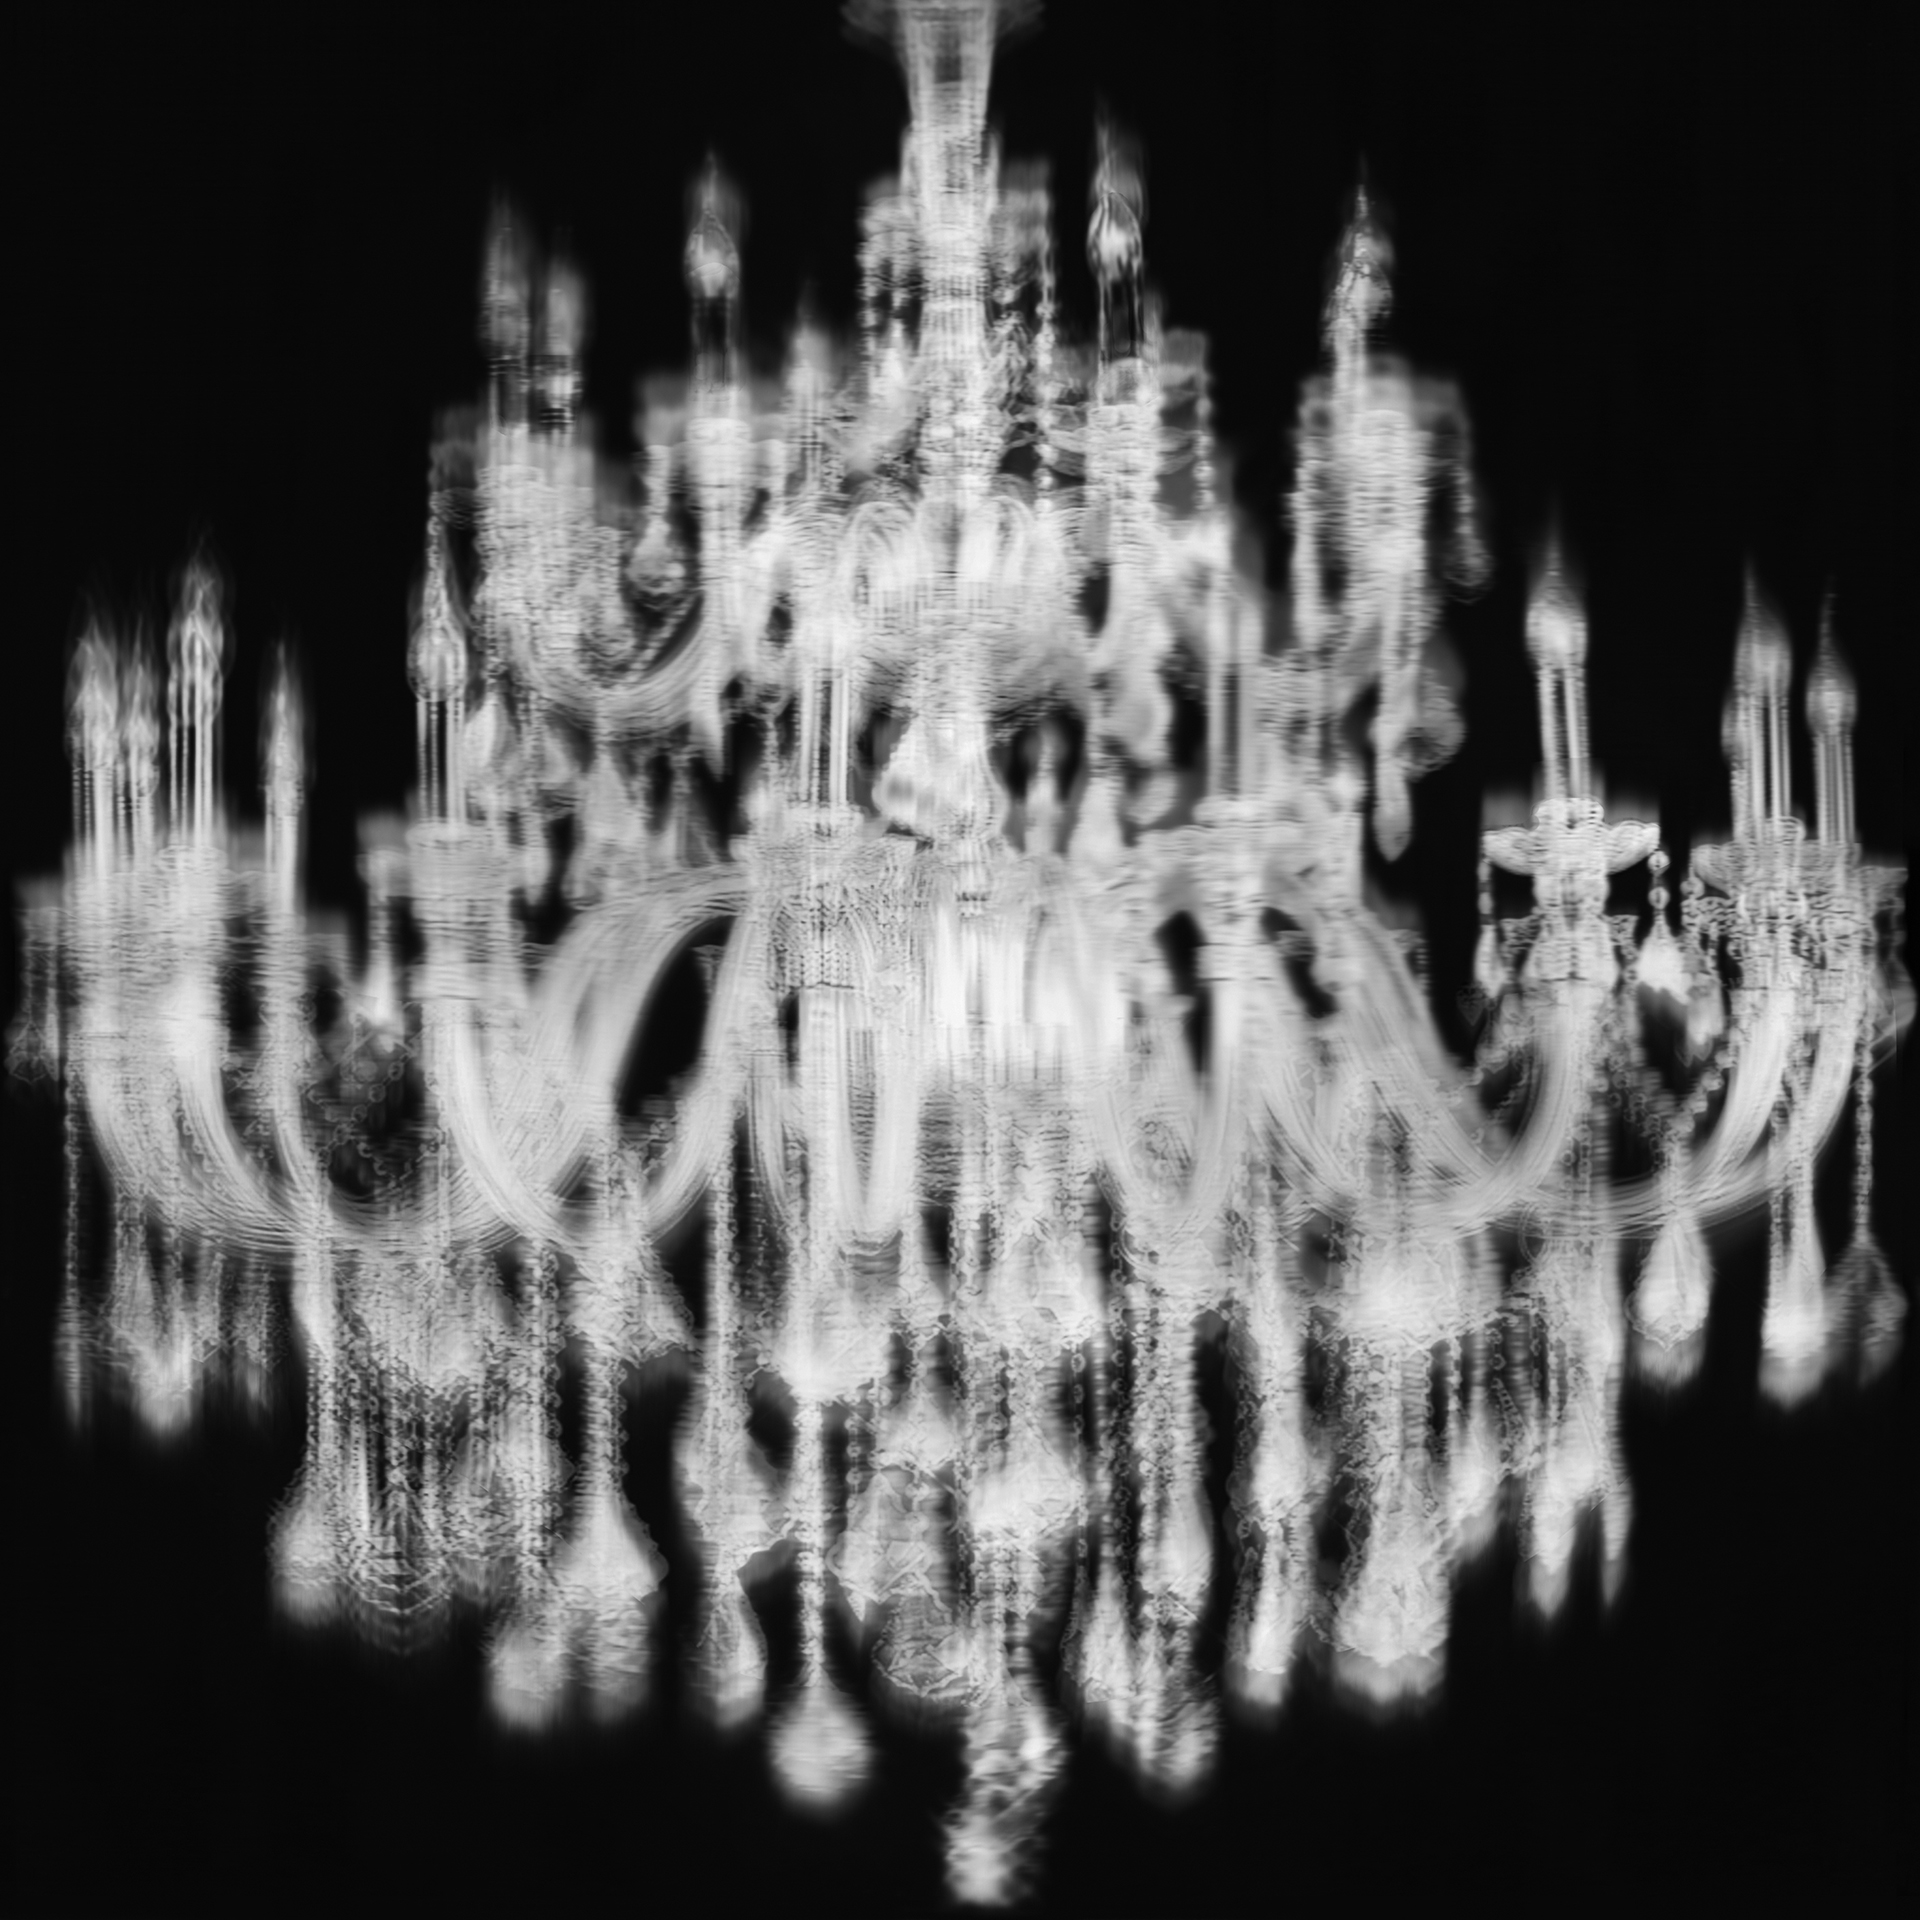 Chandelier 5.St2 2014 Digital Photograph